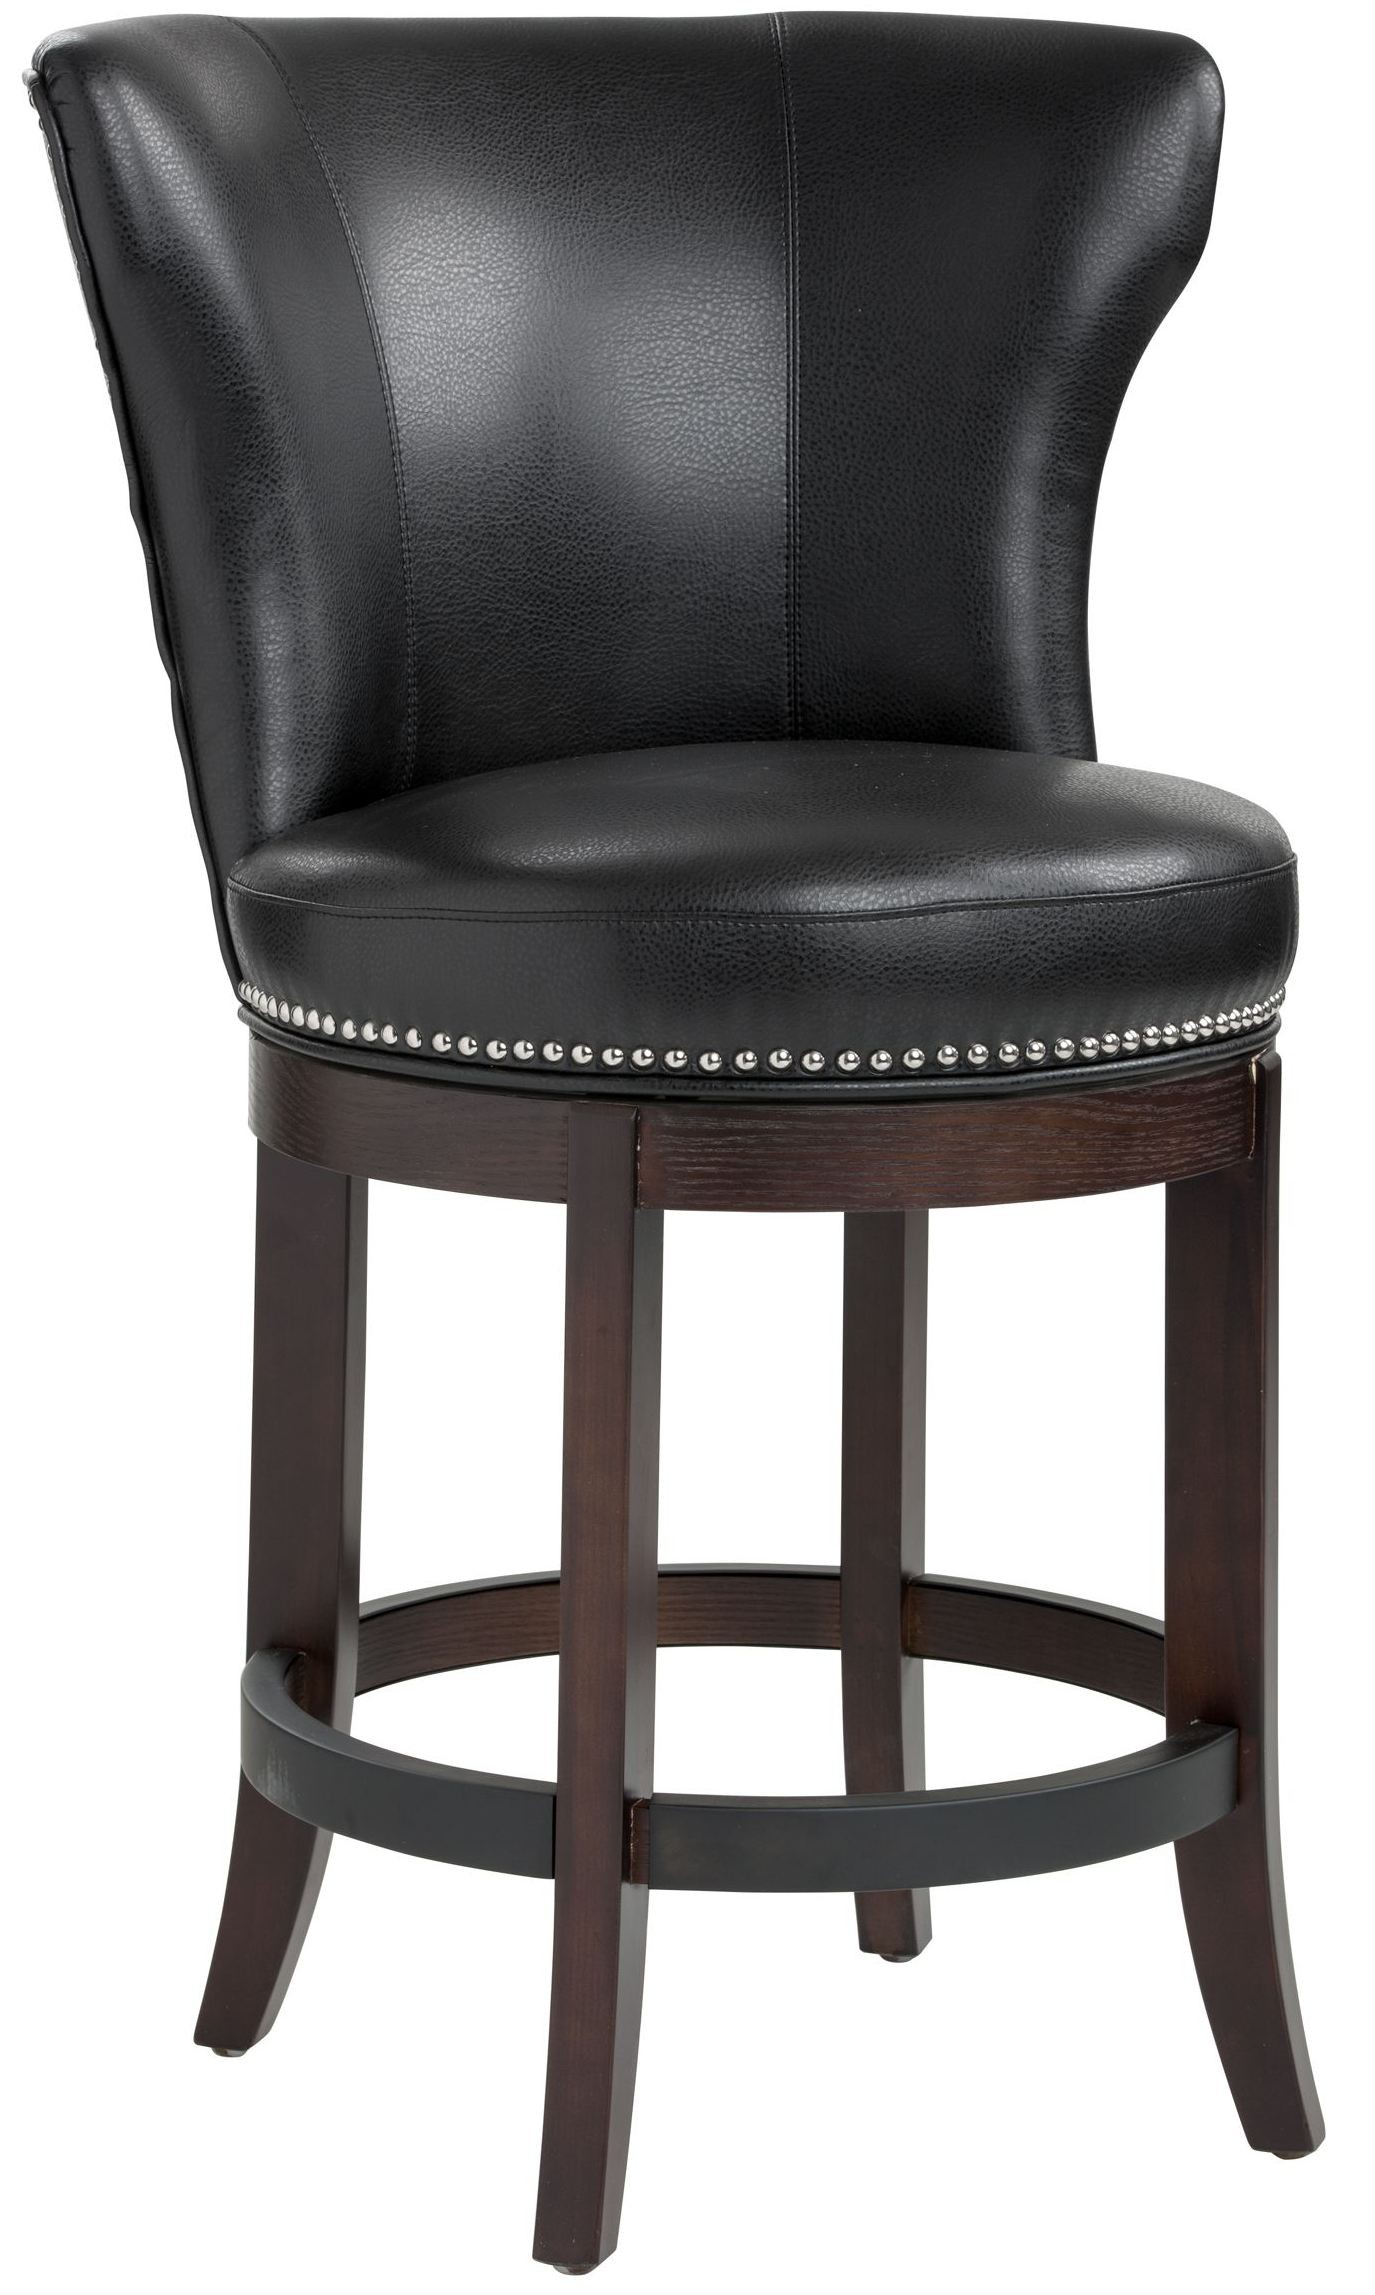 Swivel Leather Bar Stools: Tavern Black Leather Swivel Counter Stool, 54922, Sunpan